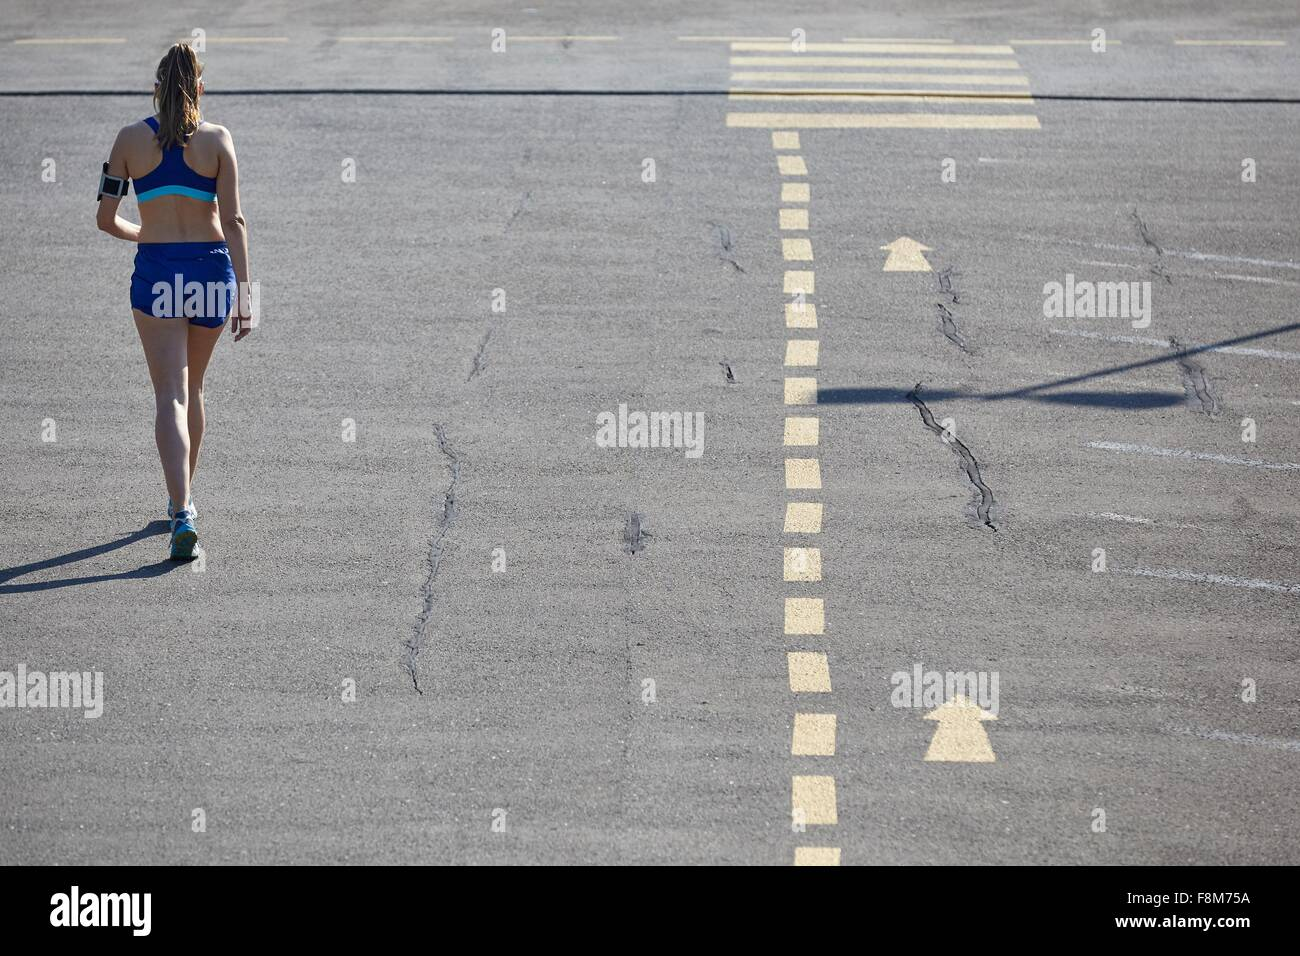 Rear view of young female runner running in parking lot - Stock Image